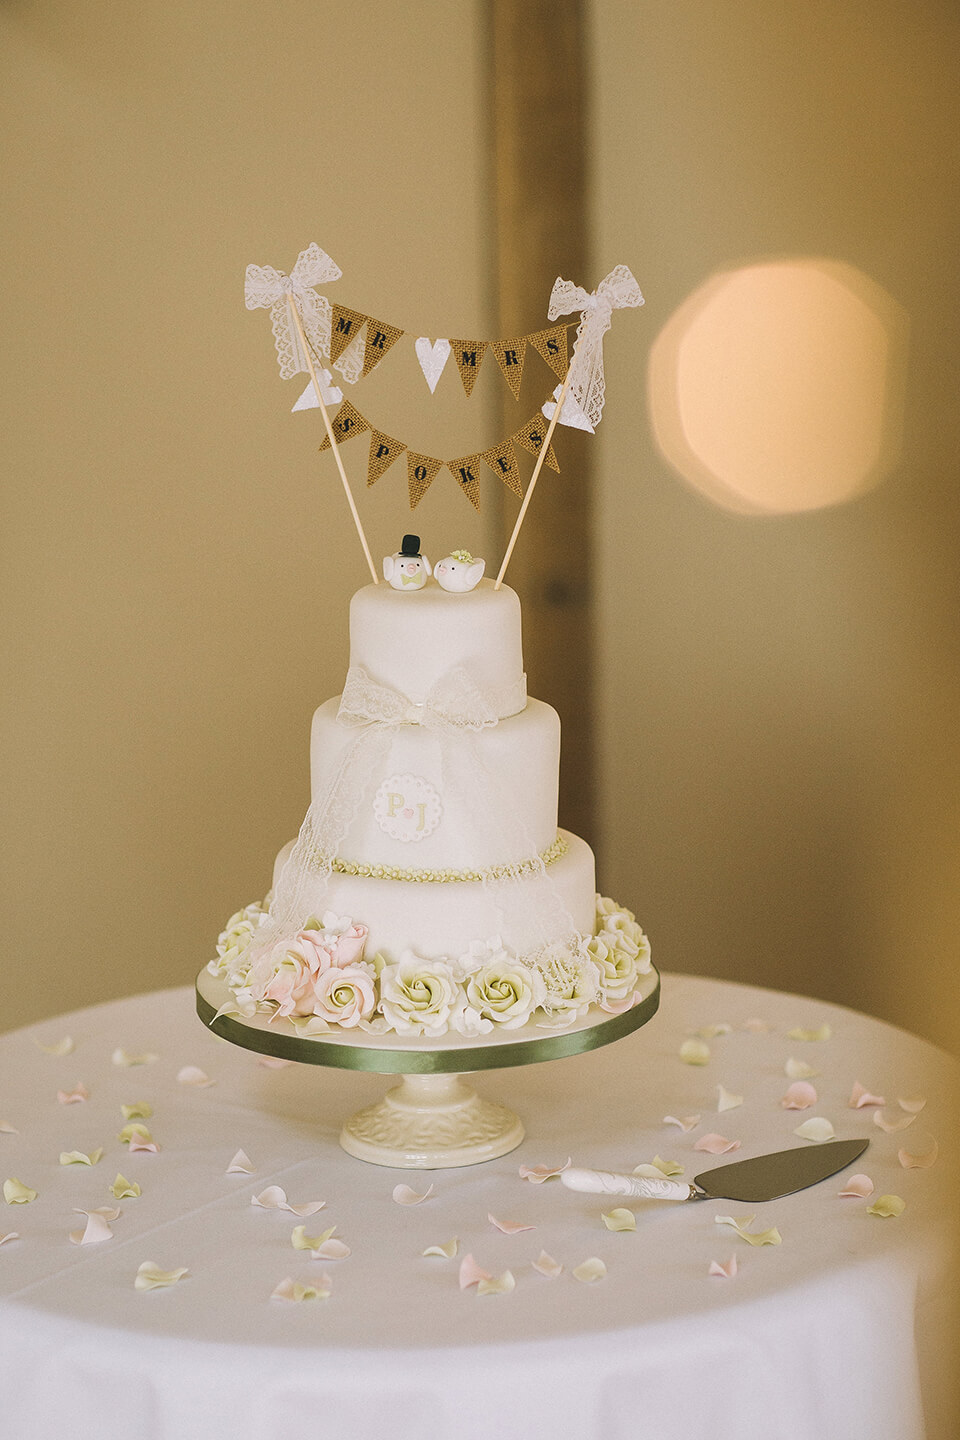 The couple had a three-tier wedding cake decorated with white roses and a bunting cake topper